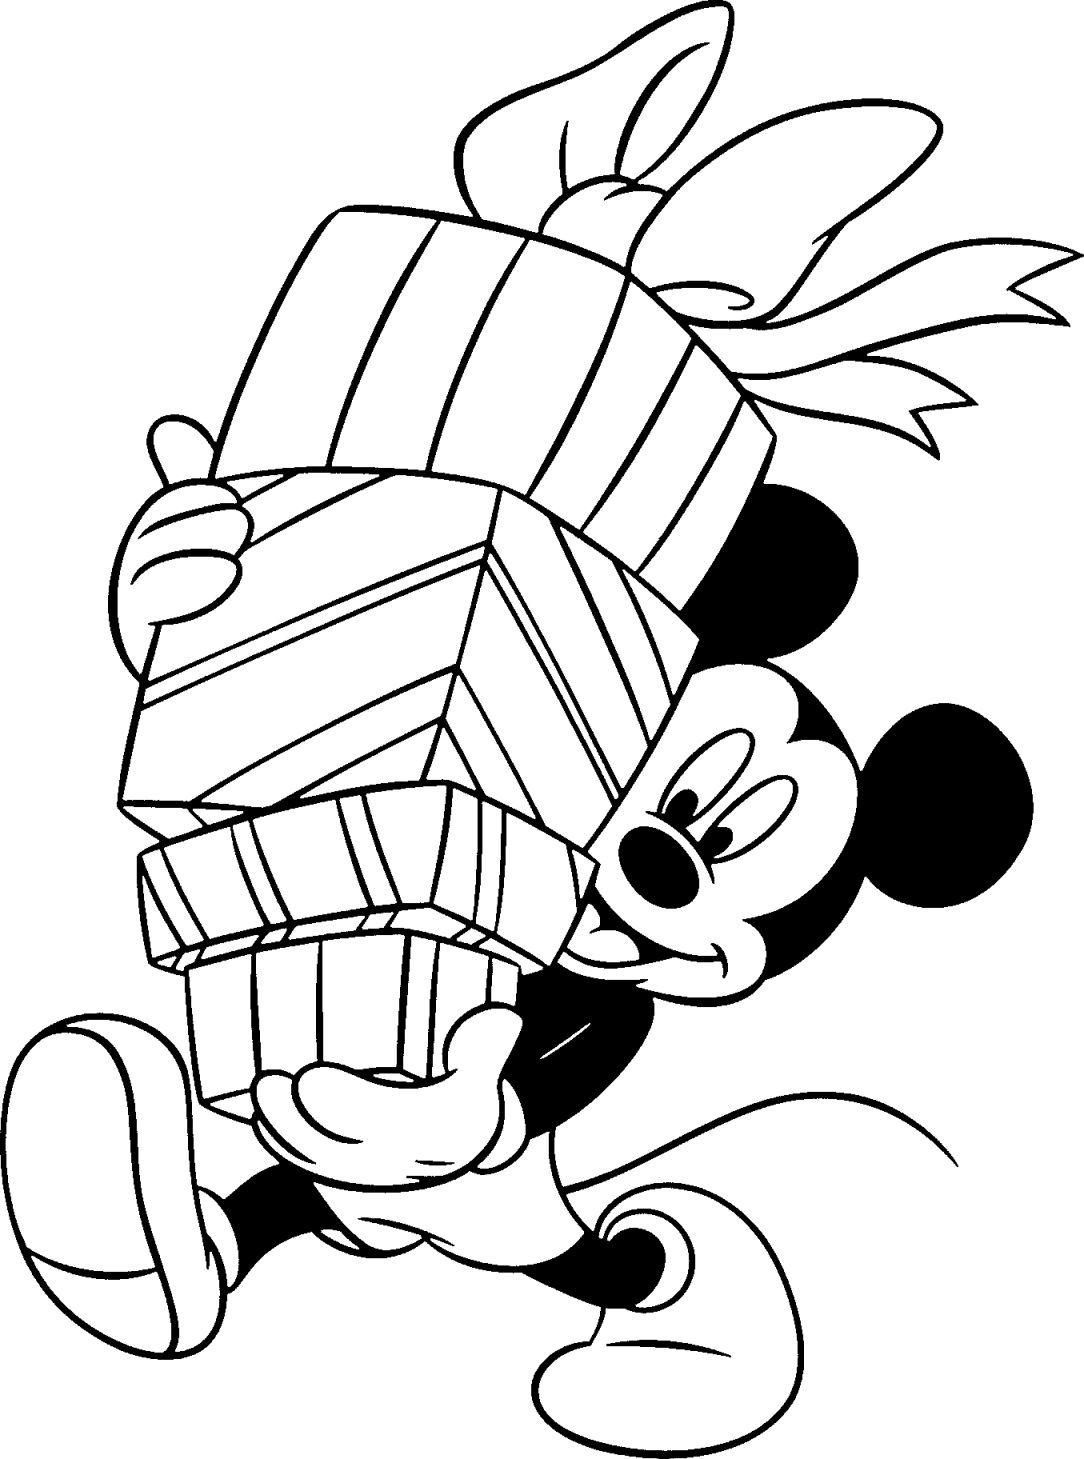 Free Disney Christmas Printable Coloring Pages for Kids | Disney ...